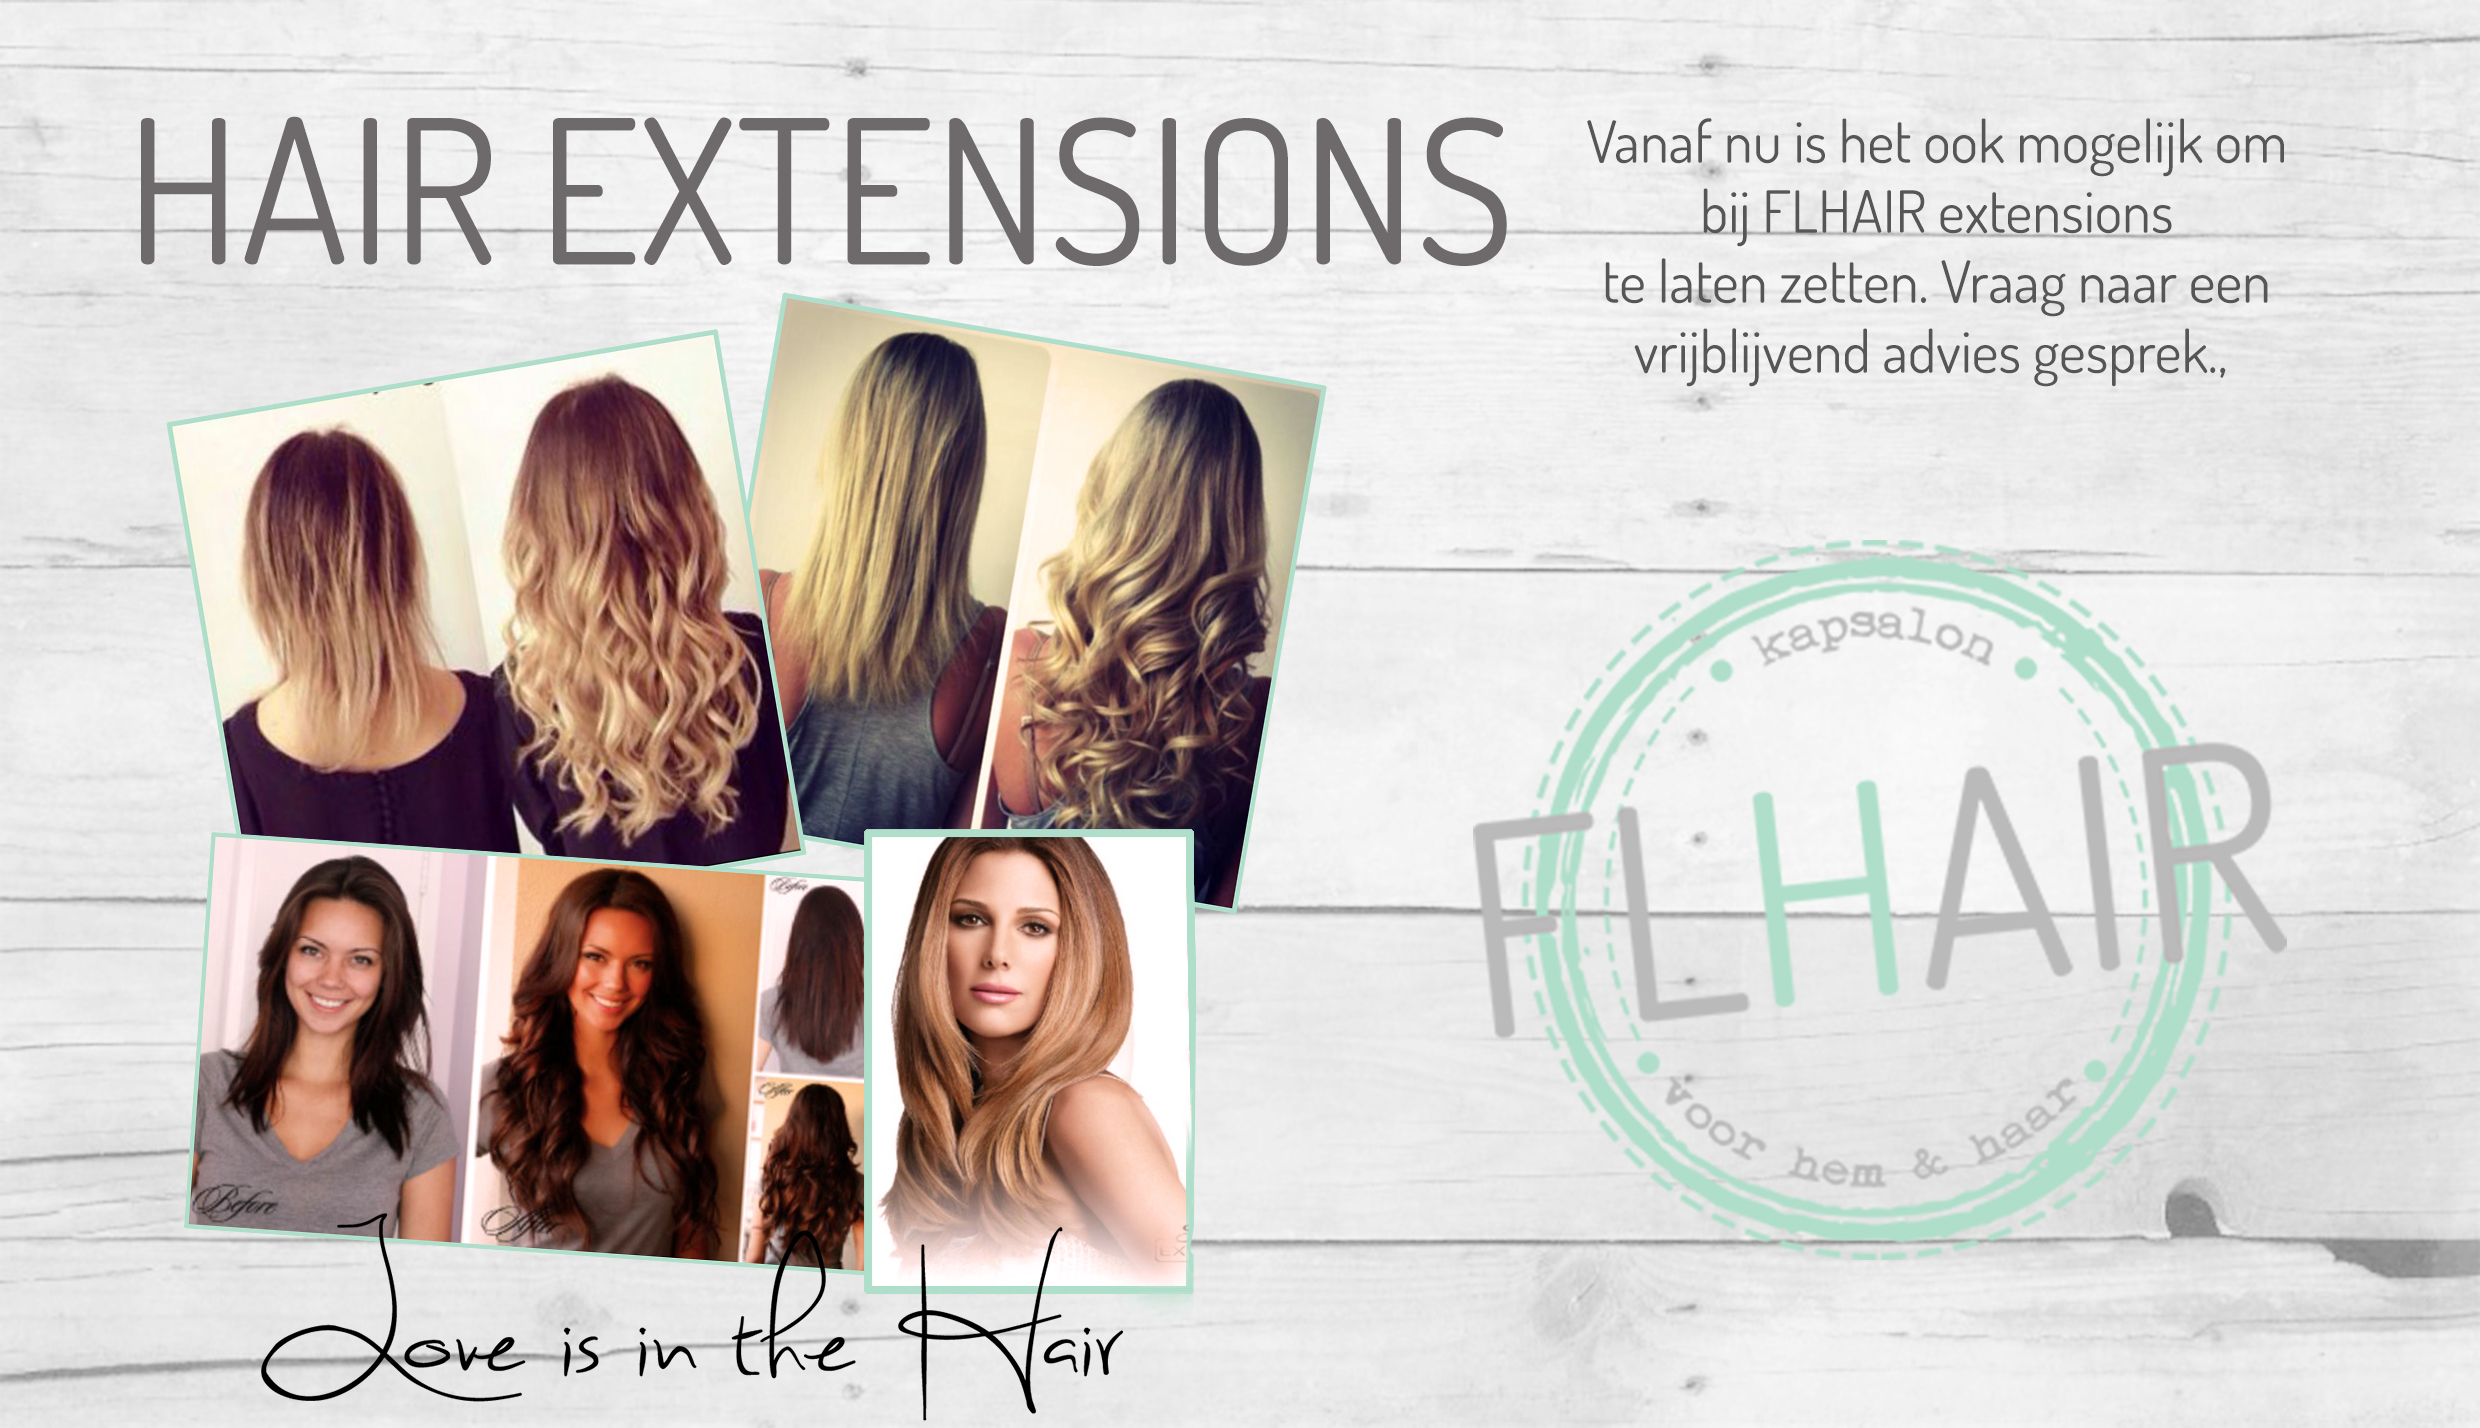 flhairextensions3